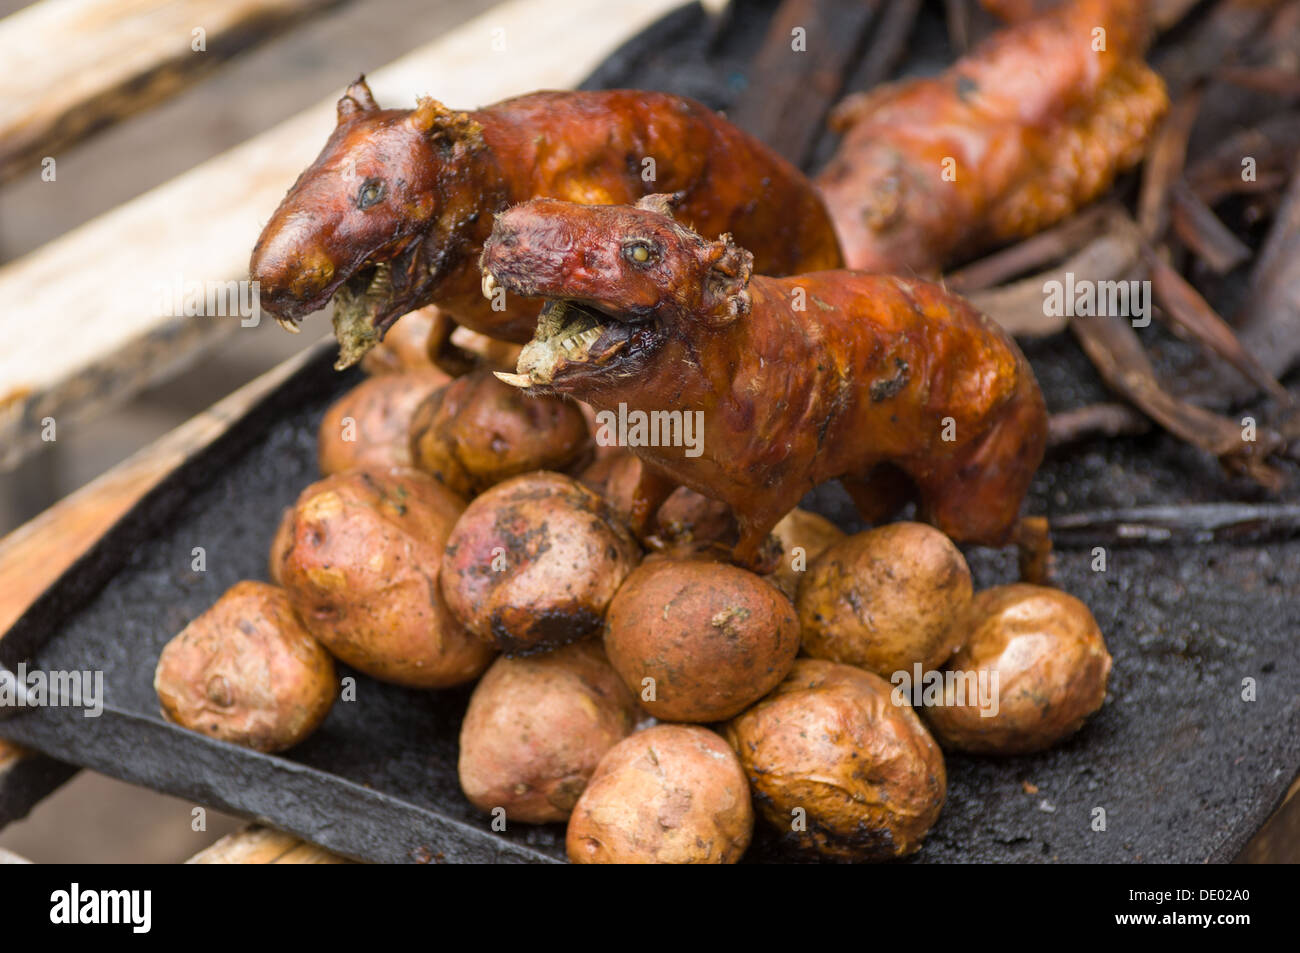 Food Sale: Baked Guinea Pigs (Cavia Porcellus) For Sale For Food